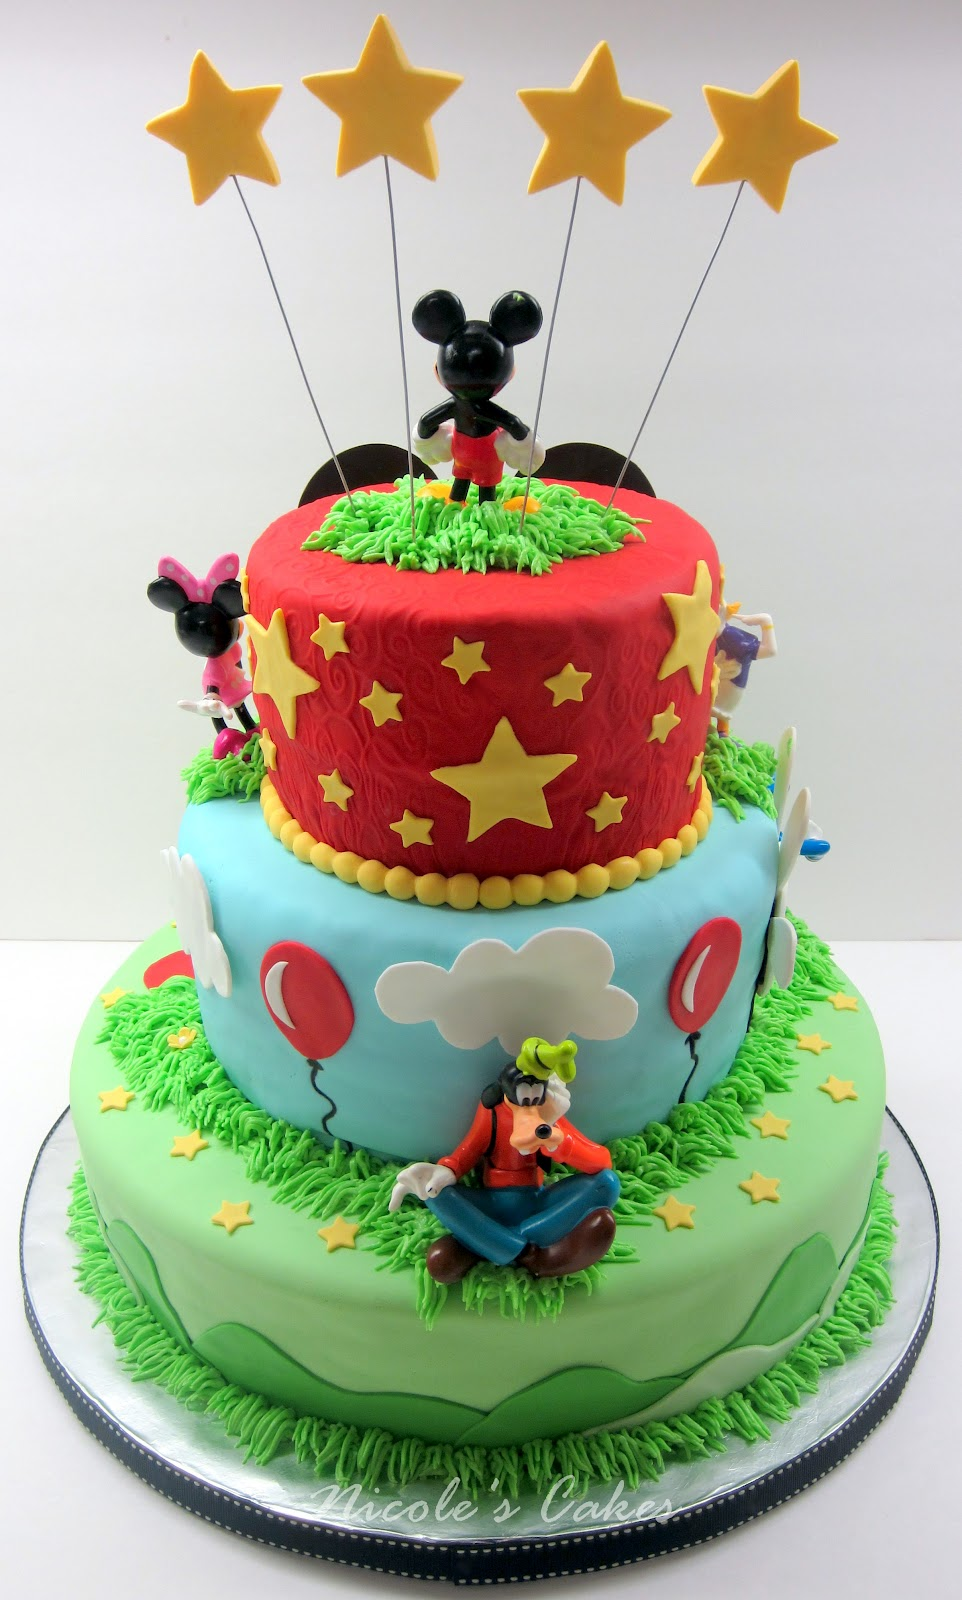 Confections, Cakes & Creations!: Mickey Mouse Clubhouse: 3 ...